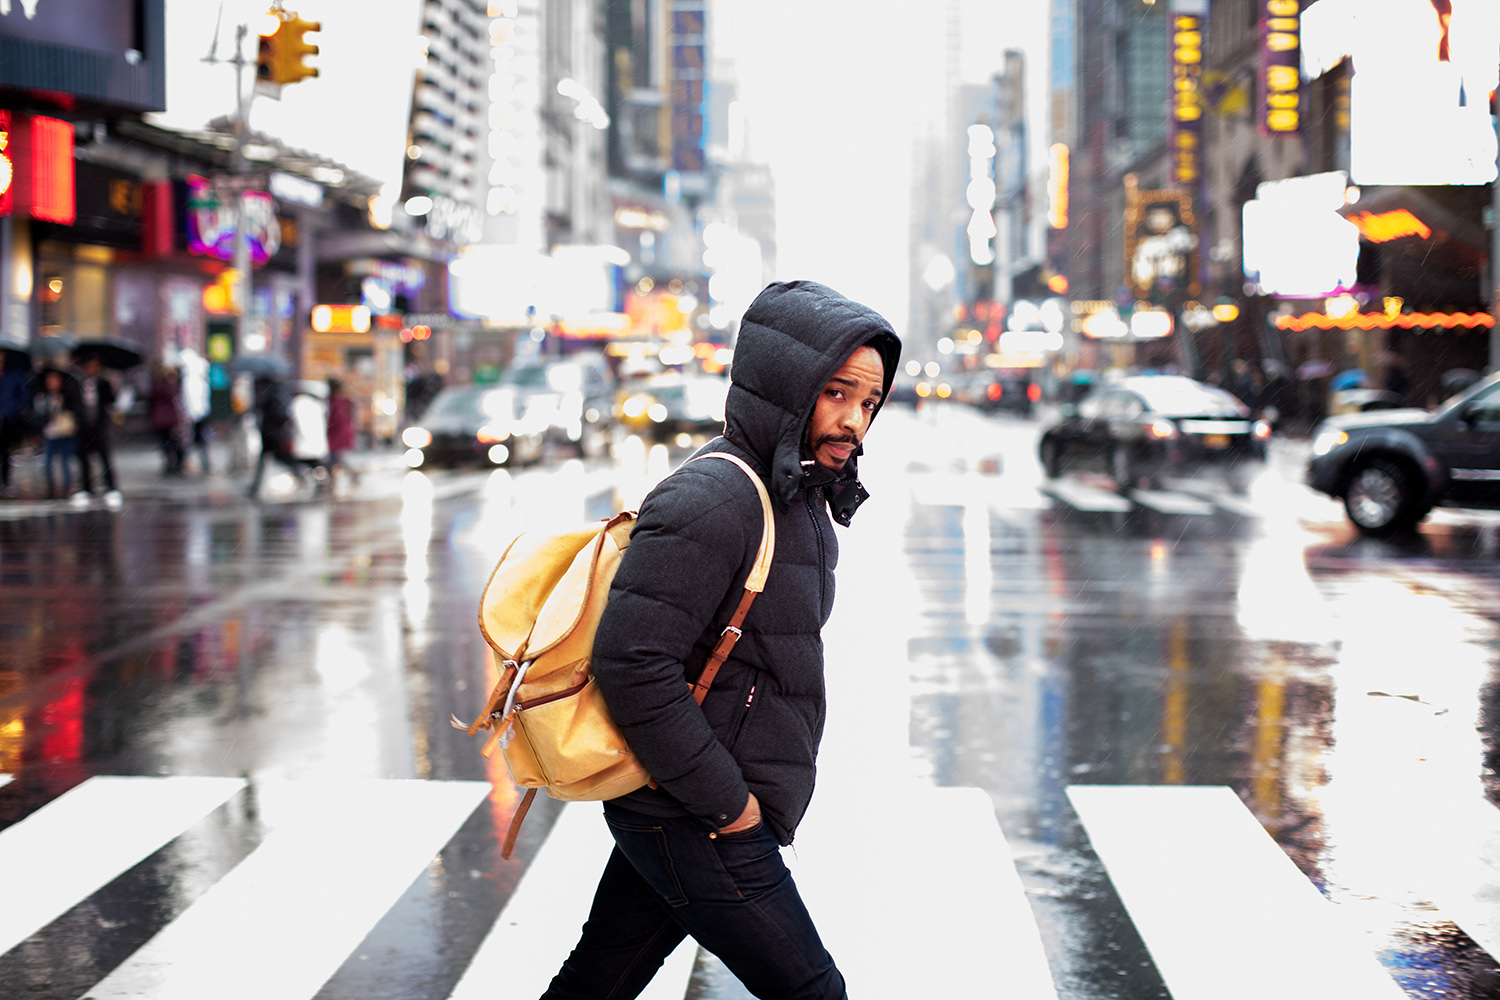 """The actor André Holland heading to the Samuel J. Friedman Theater in Manhattan, where he is starring in August Wilson's play """"Jitney."""" Demetrius Freeman for The New York Times"""